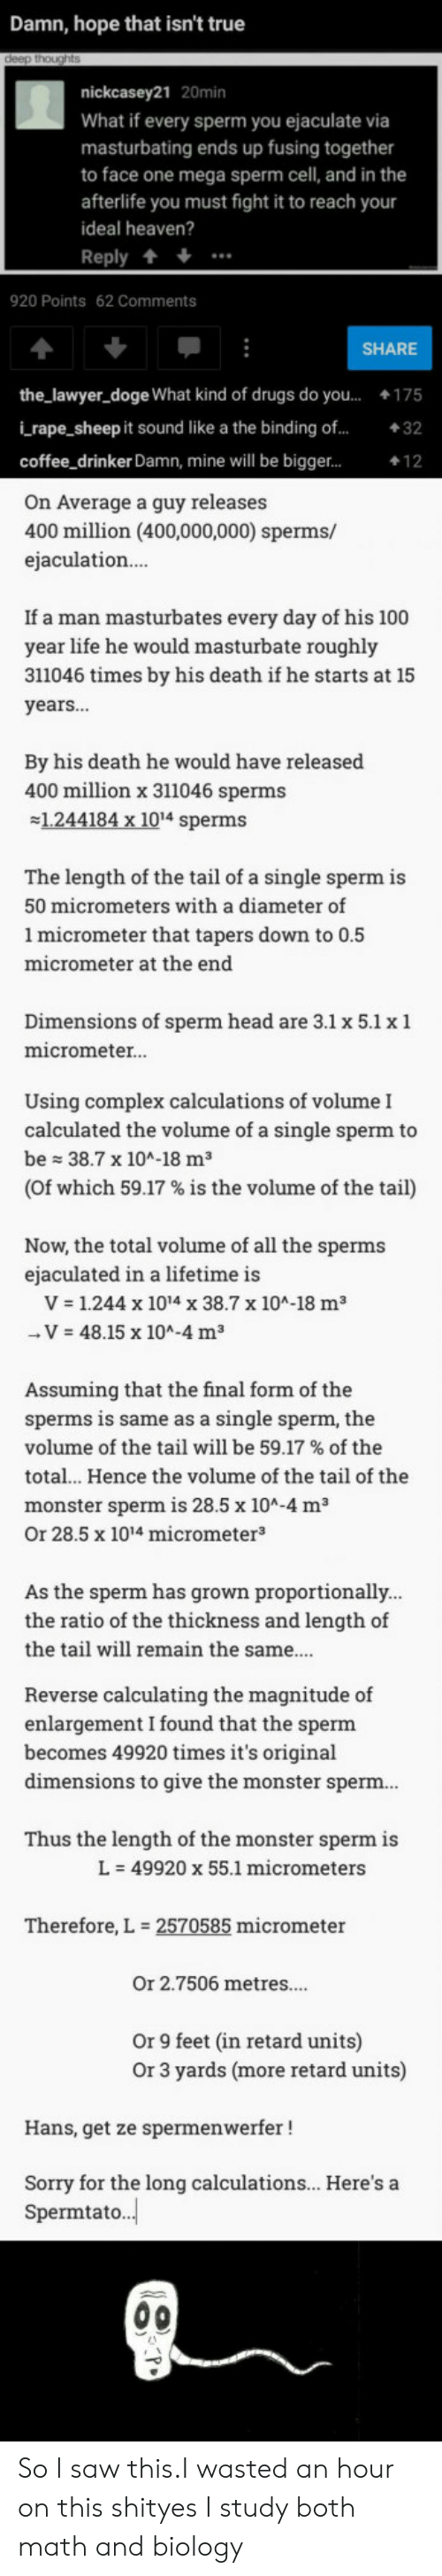 The Ratio: Damn, hope that isn't true  nickcasey21 20min  What if every sperm you ejaculate via  masturbating ends up fusing together  to face one mega sperm cell, and in the  afterlife you must fight it to reach your  ideal heaven?  Reply +  920 Points 62 Comments  SHARE  the_lawyer_doge What kind of drugs do you...175  i rape_sheep it sound like a the binding of...32  coffee drinker Damn, mine will be bigger...  On Average a guy releases  400 million (400,000,000) sperms/  ejaculation  If a man masturbates every day of his 100  year life he would masturbate roughly  311046 times by his death if he starts at 15  years...  By his death he would have released  400 million x 311046 sperms  1.244184 x 1014 sperms  The length of the tail of a single sperm is  50 micrometers with a diameter of  1 micrometer that tapers down to 0.5  micrometer at the end  Dimensions of sperm head are 3.1 x 5.1 x 1  micrometer.  Using complex calculations of volume I  calculated the volume of a single sperm to  be 38.7 x 104-18 m3  (of which 59.17 % is the volume of the tail)  Now, the total volume of all the sperms  ejaculated in a lifetime is  V 1.244 x 1014 x 38.7 x 10A-18 m3  V 48.15 x 104-4 m3  Assuming that the final form of the  sperms is same as a single sperm, the  volume of the tail will be 59.17 % of the  total.. Hence the volume of the tail of the  monster sperm is 28.5 x 10A-4 m3  Or 28.5 x 1014 micrometer3  As the sperm has grown proportionally  the ratio of the thickness and length of  the tail will remain the same...  Reverse calculating the magnitude of  enlargement I found that the sperm  becomes 49920 times it's original  dimensions to give the monster sperm  Thus the length of the monster sperm is  L-49920 x 55.1 micrometers  Therefore, L  2570585 micrometer  Or 2.7506 metres....  Or 9 feet (in retard units)  Or 3 yards (more retard units)  Hans, get ze spermenwerfer!  Sorry for the long calculations... Here's a  Spermtato. So I saw this.I wasted an hour on this shityes I study both math and biology